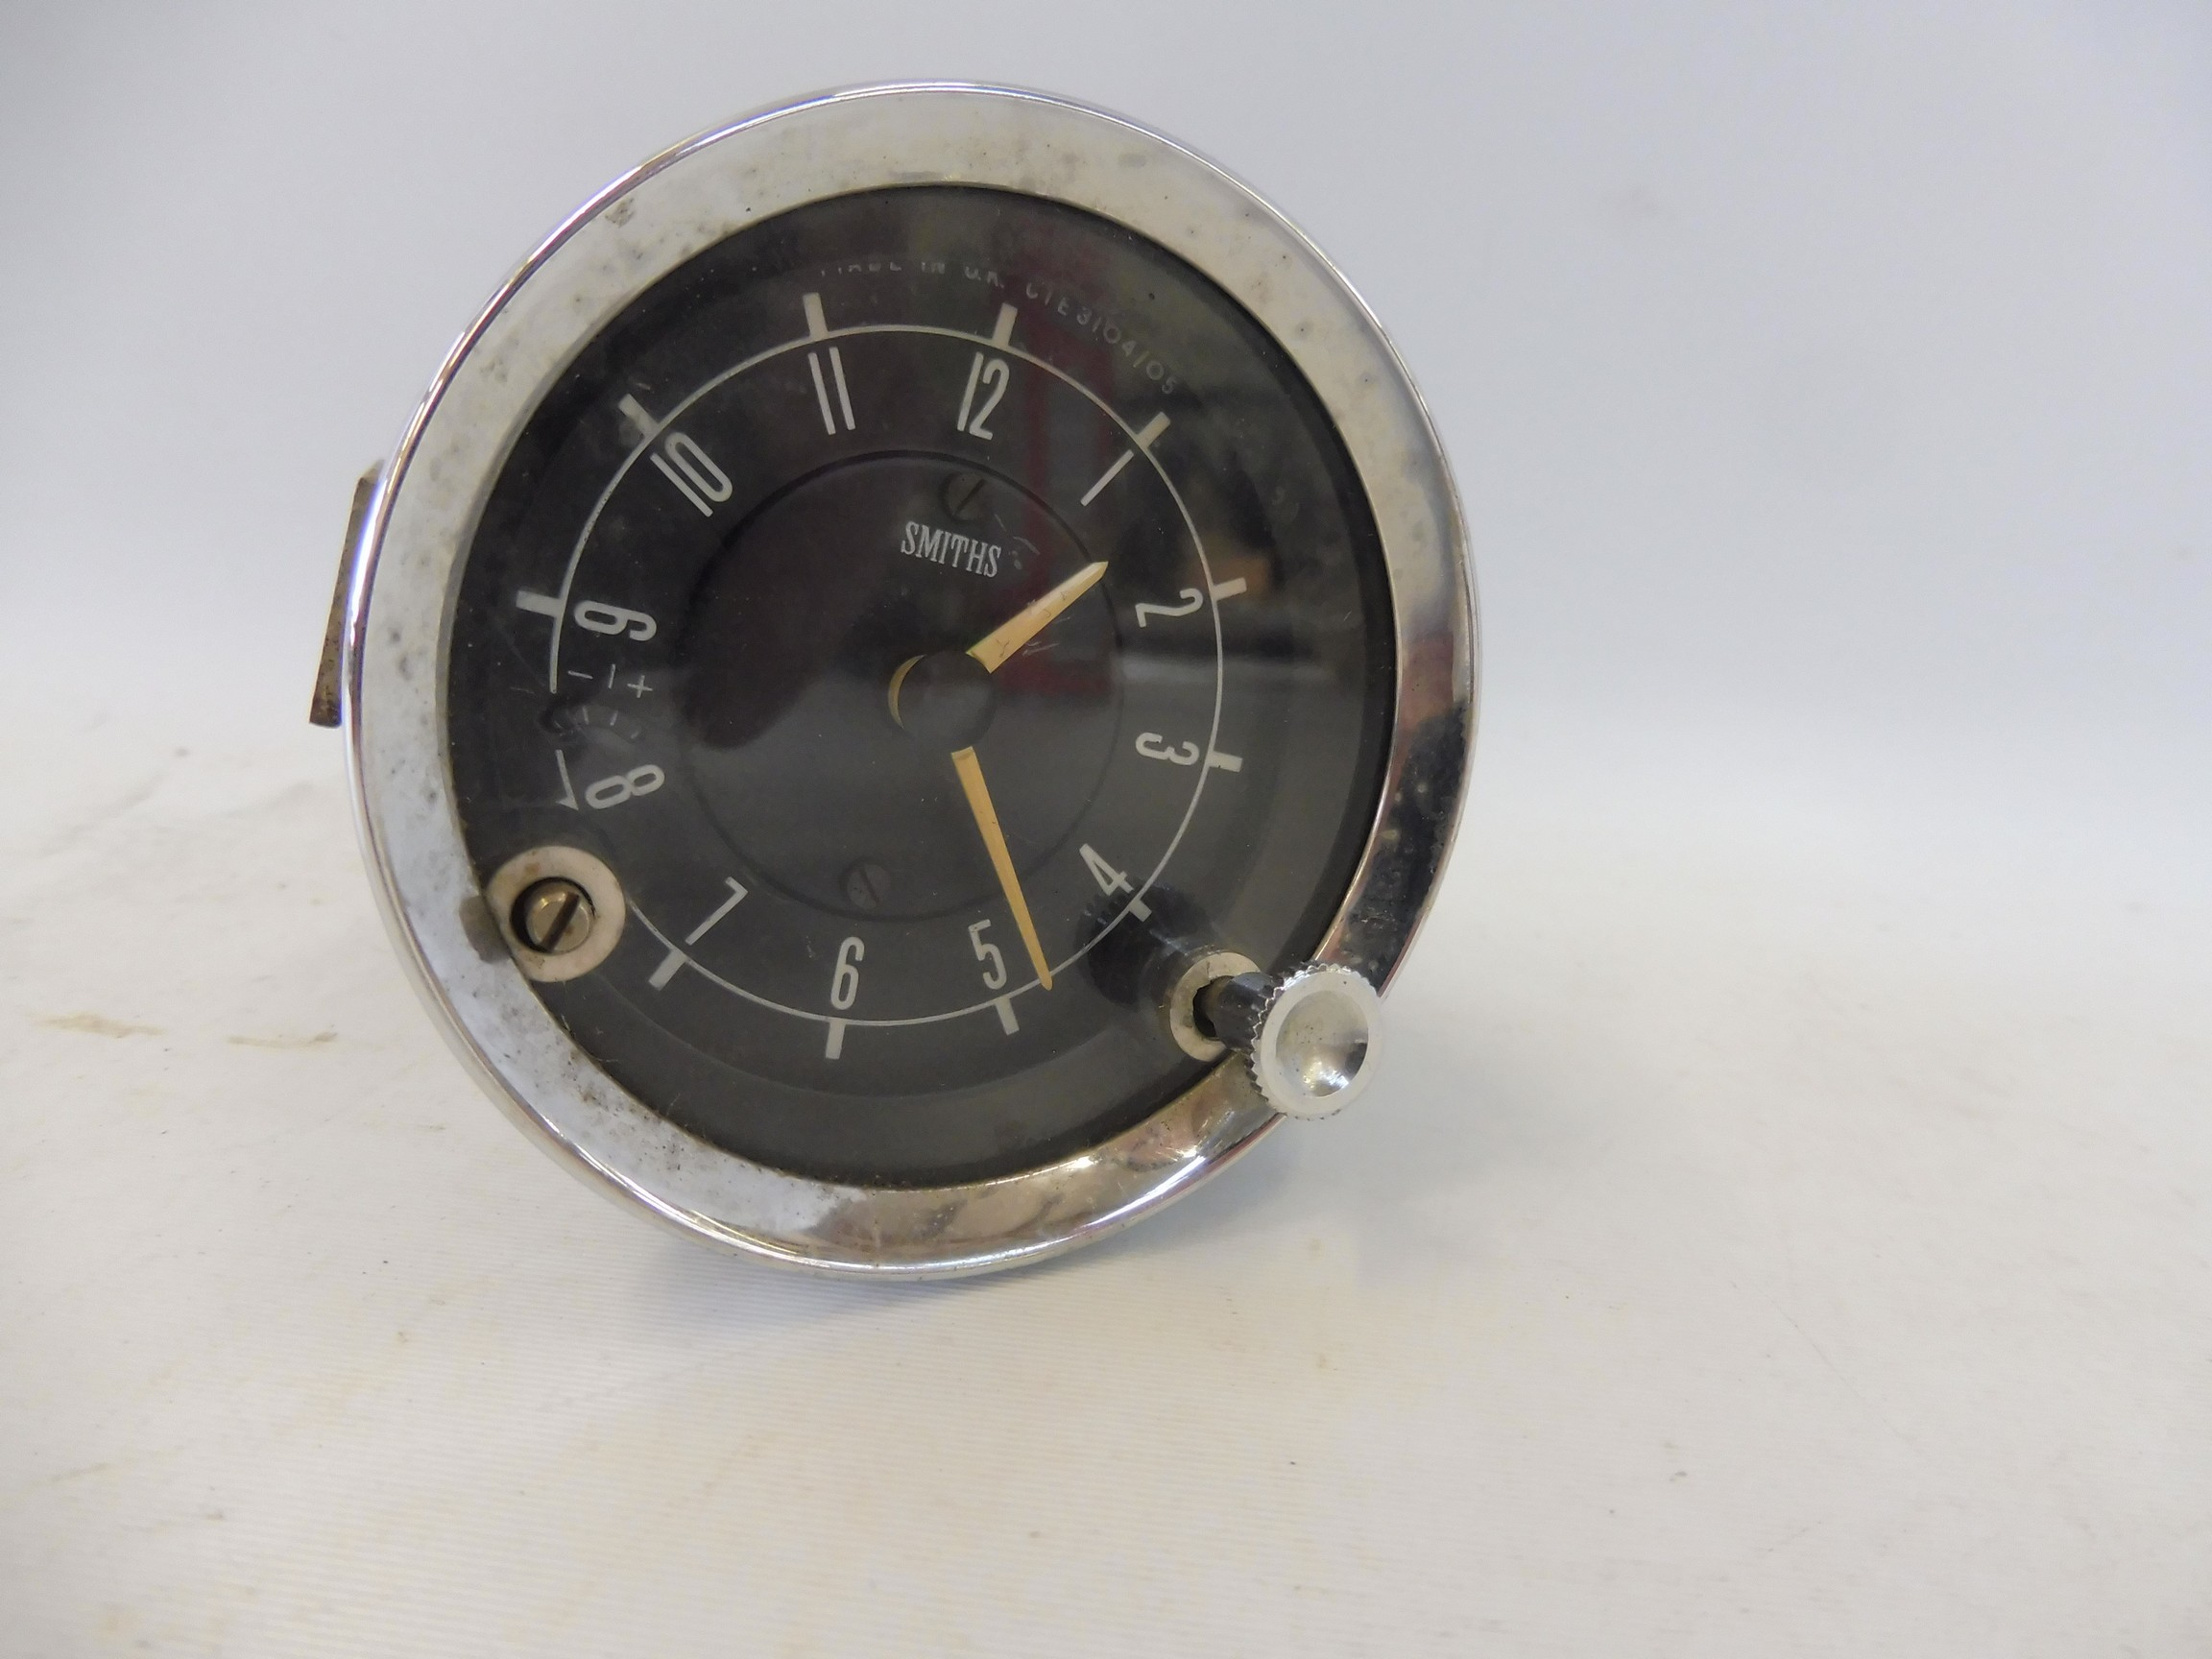 An autojumblers lot of items to include a Smiths car clock, a limousine interior light etc. - Image 4 of 4